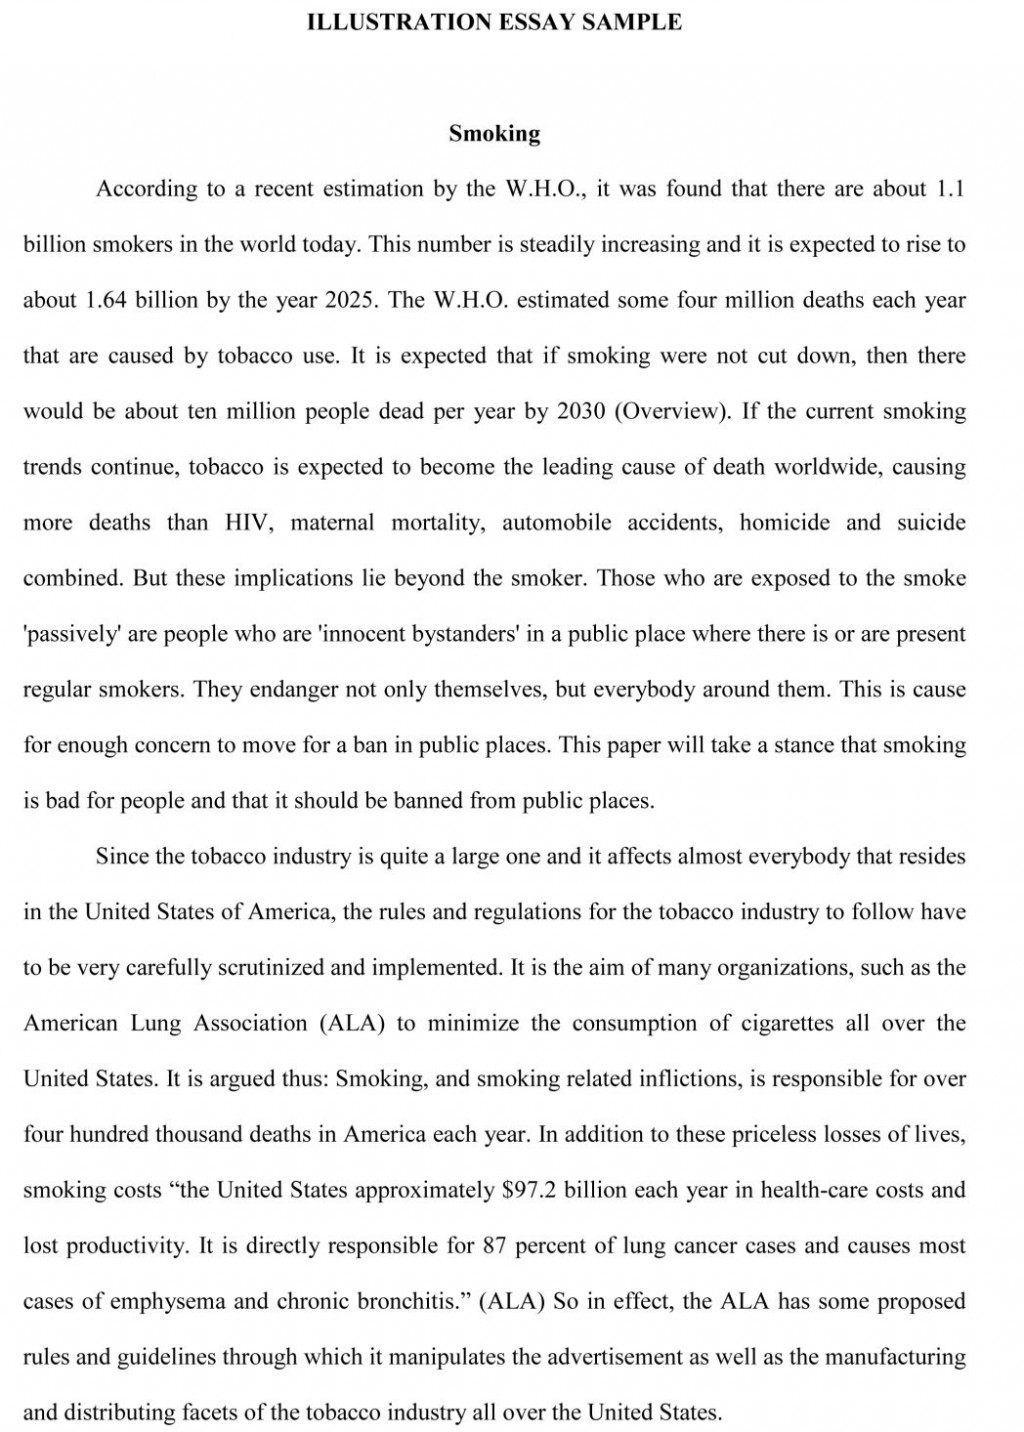 013 Essayxample Apply Texas Topics Fahrenheit Fahrenheitessay College Application Illustration Sam Cliche Promptxamples Question Rutgers Good To Avoid 1048x1466 Archaicawful Essay Prompt C Example Topic Examples A Large